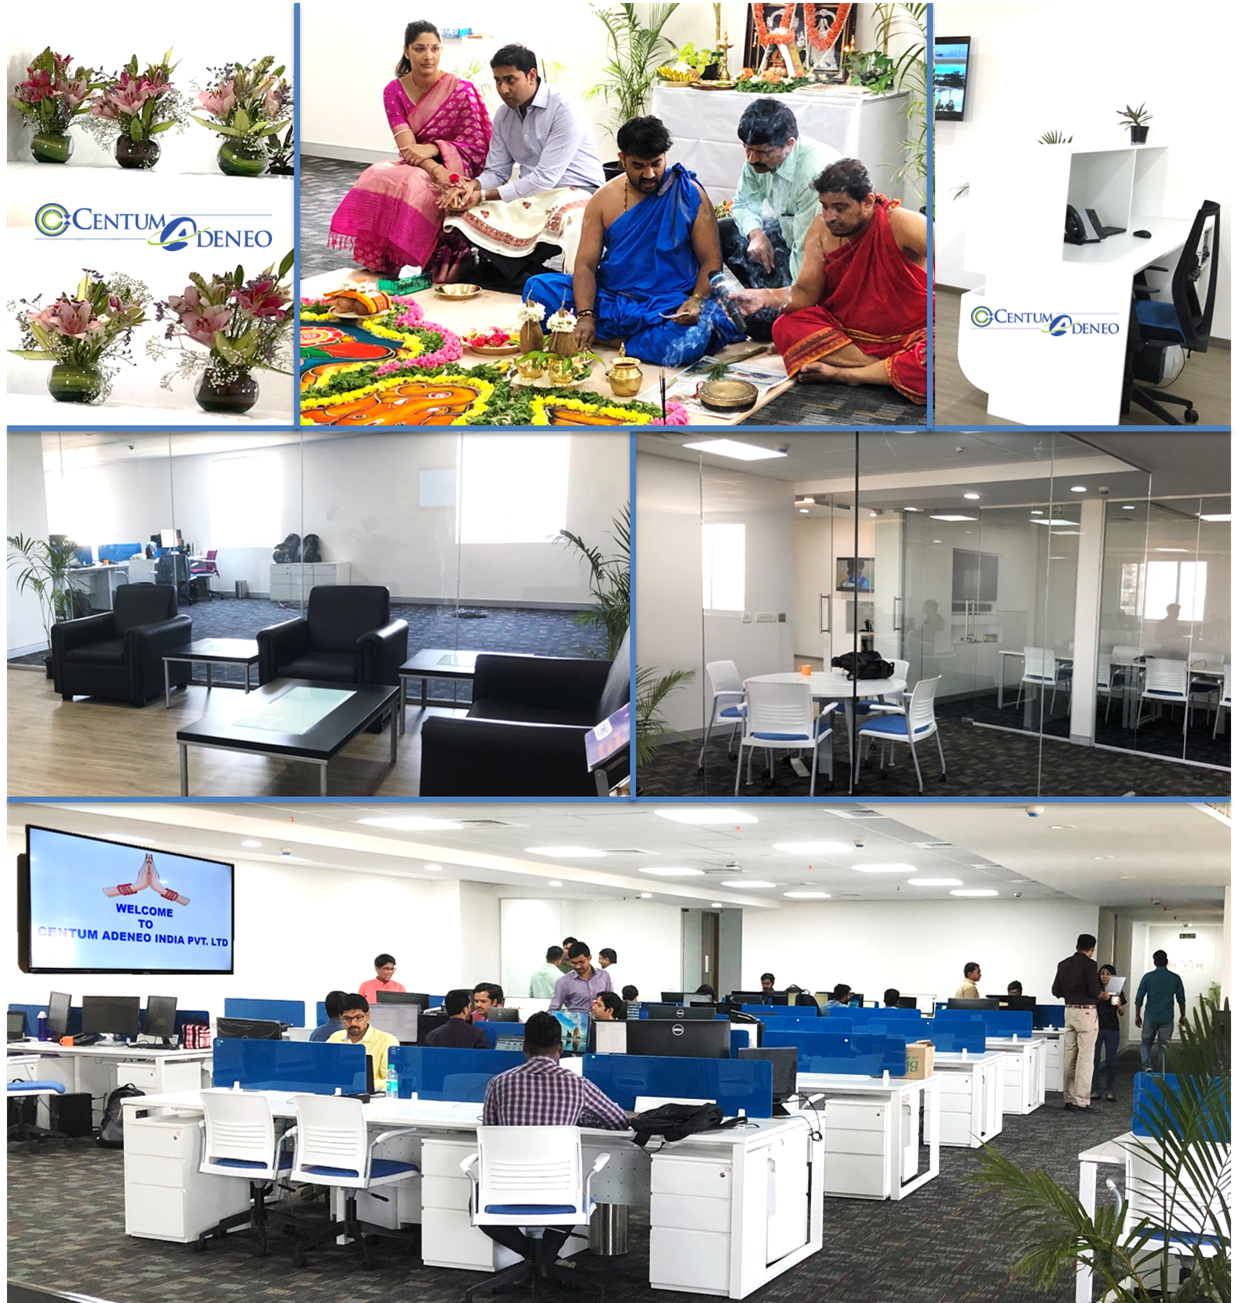 Inauguration of the new offices for Centum Adeneo India